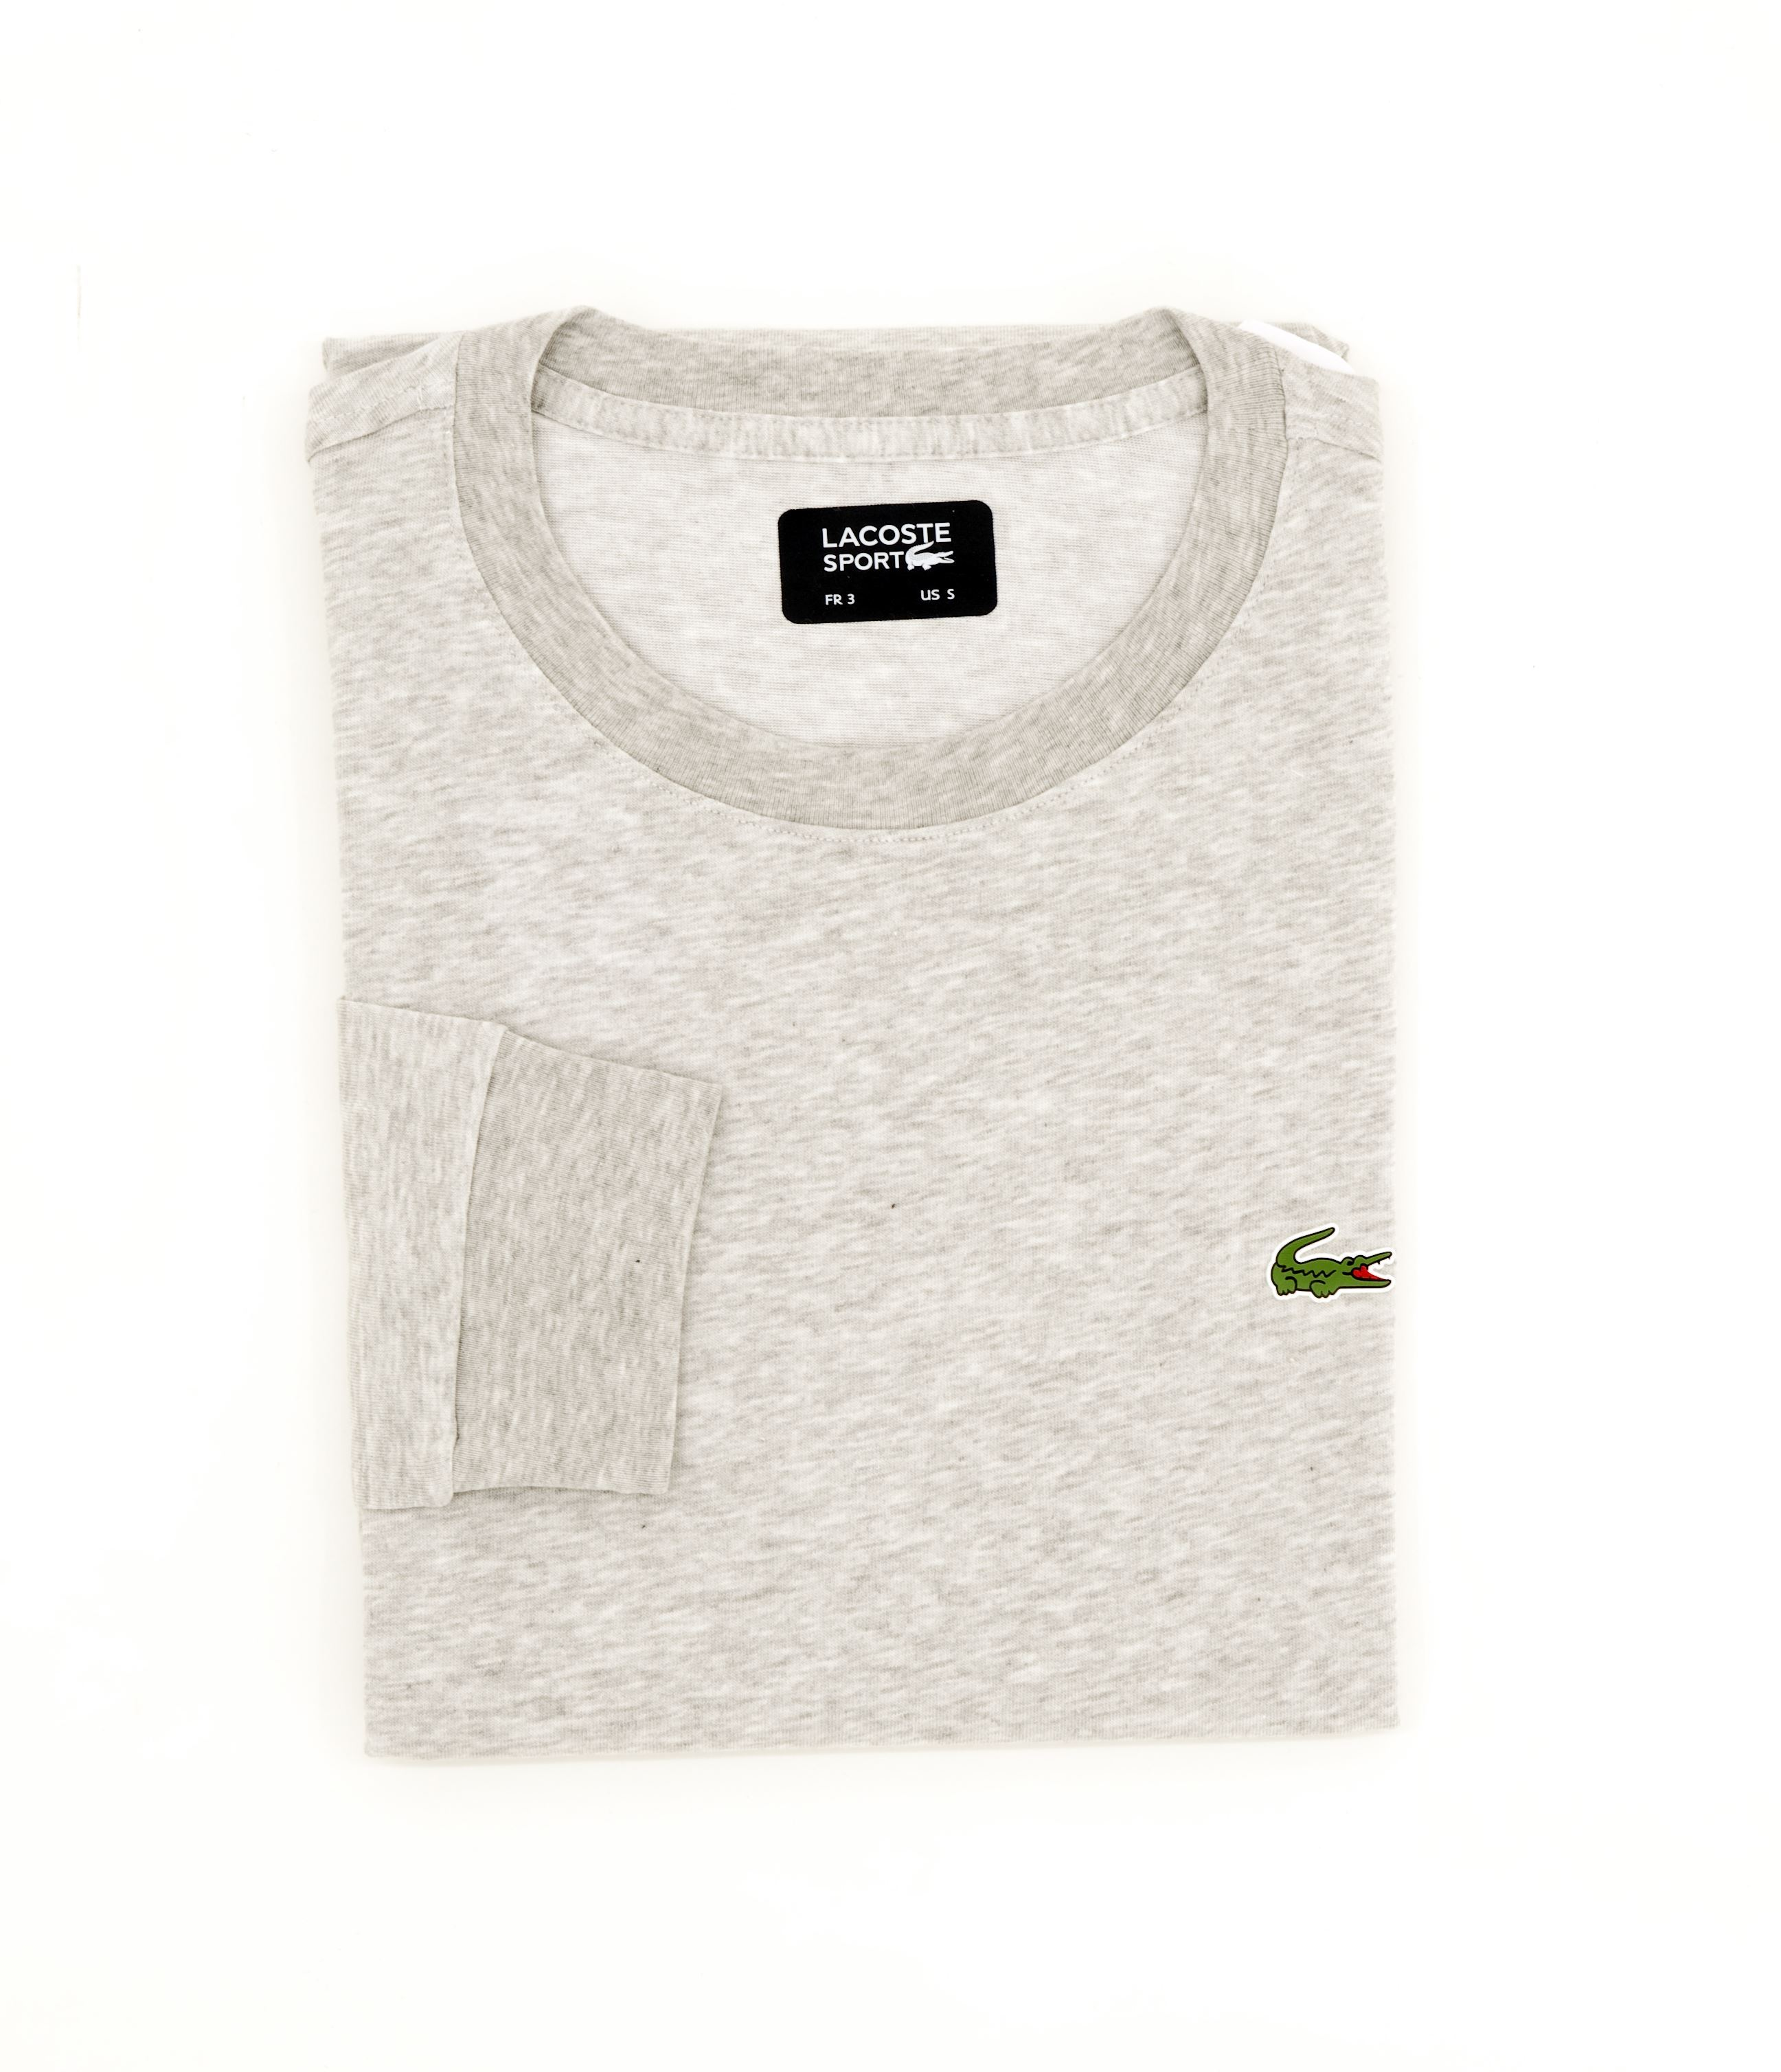 d6d65efce Lacoste long sleeve t-shirt argent chine Regular Fit - Floccari Store